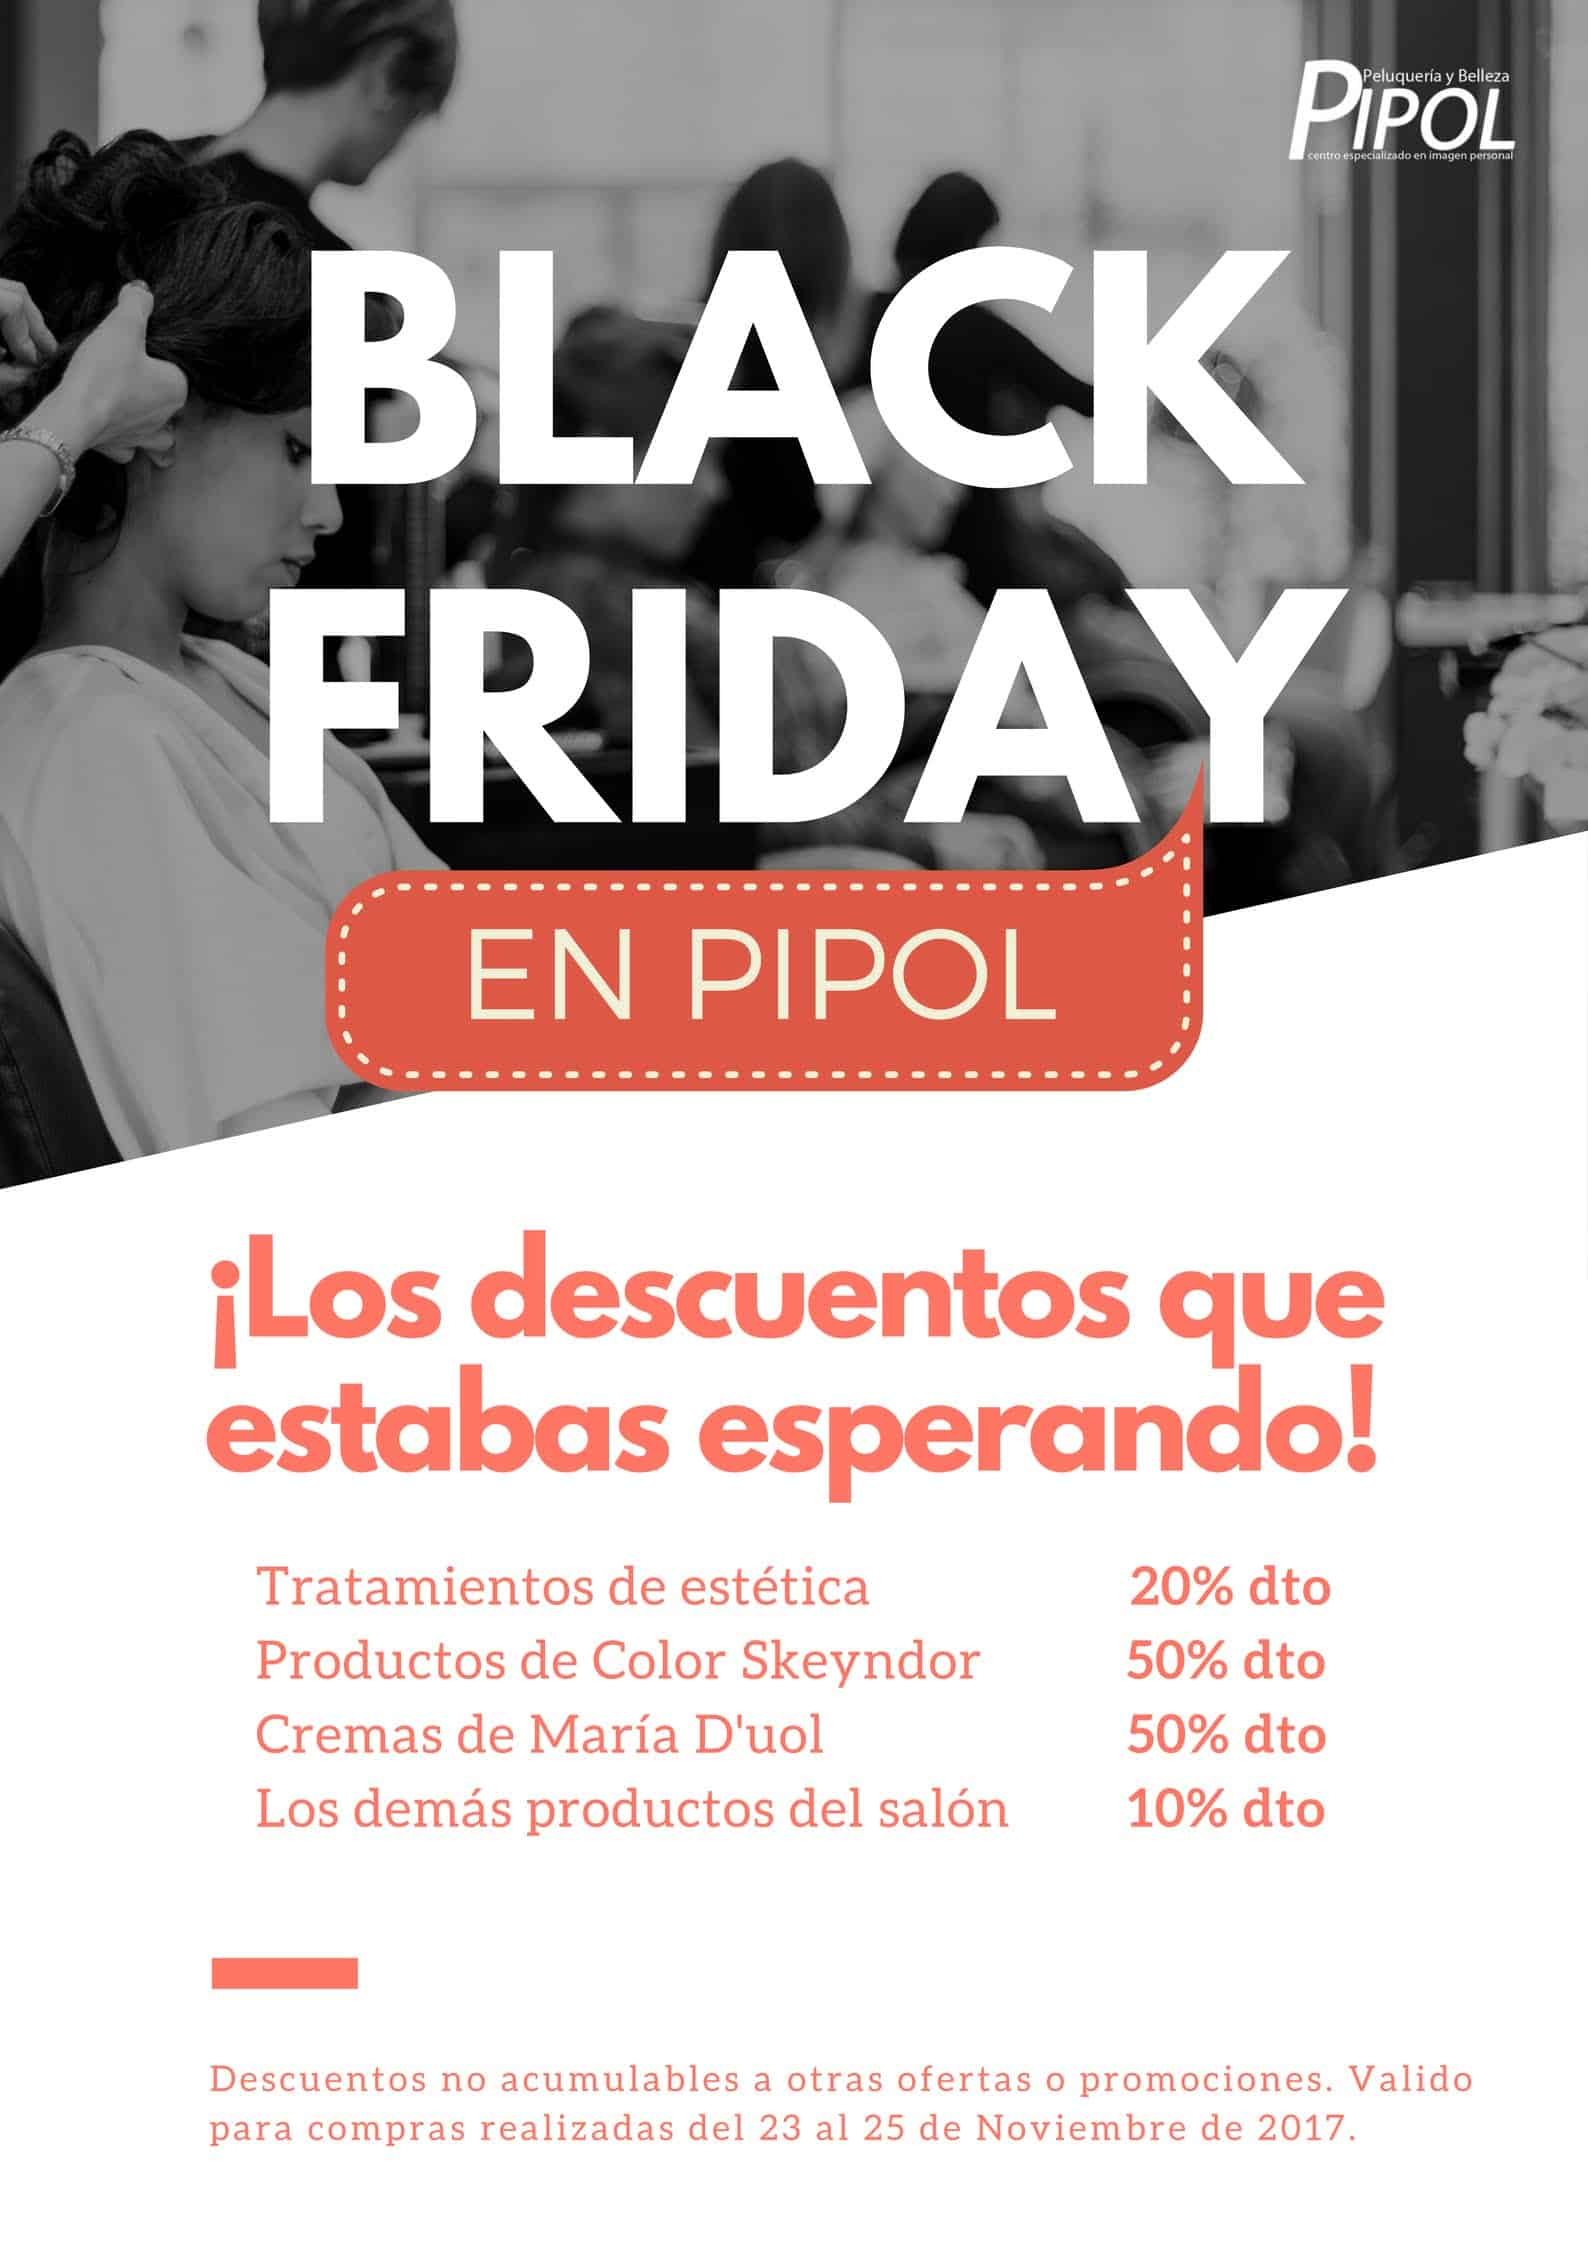 Promoci n peluquer a black friday peluquer a pipol for Para desarrollar su salon rectangular